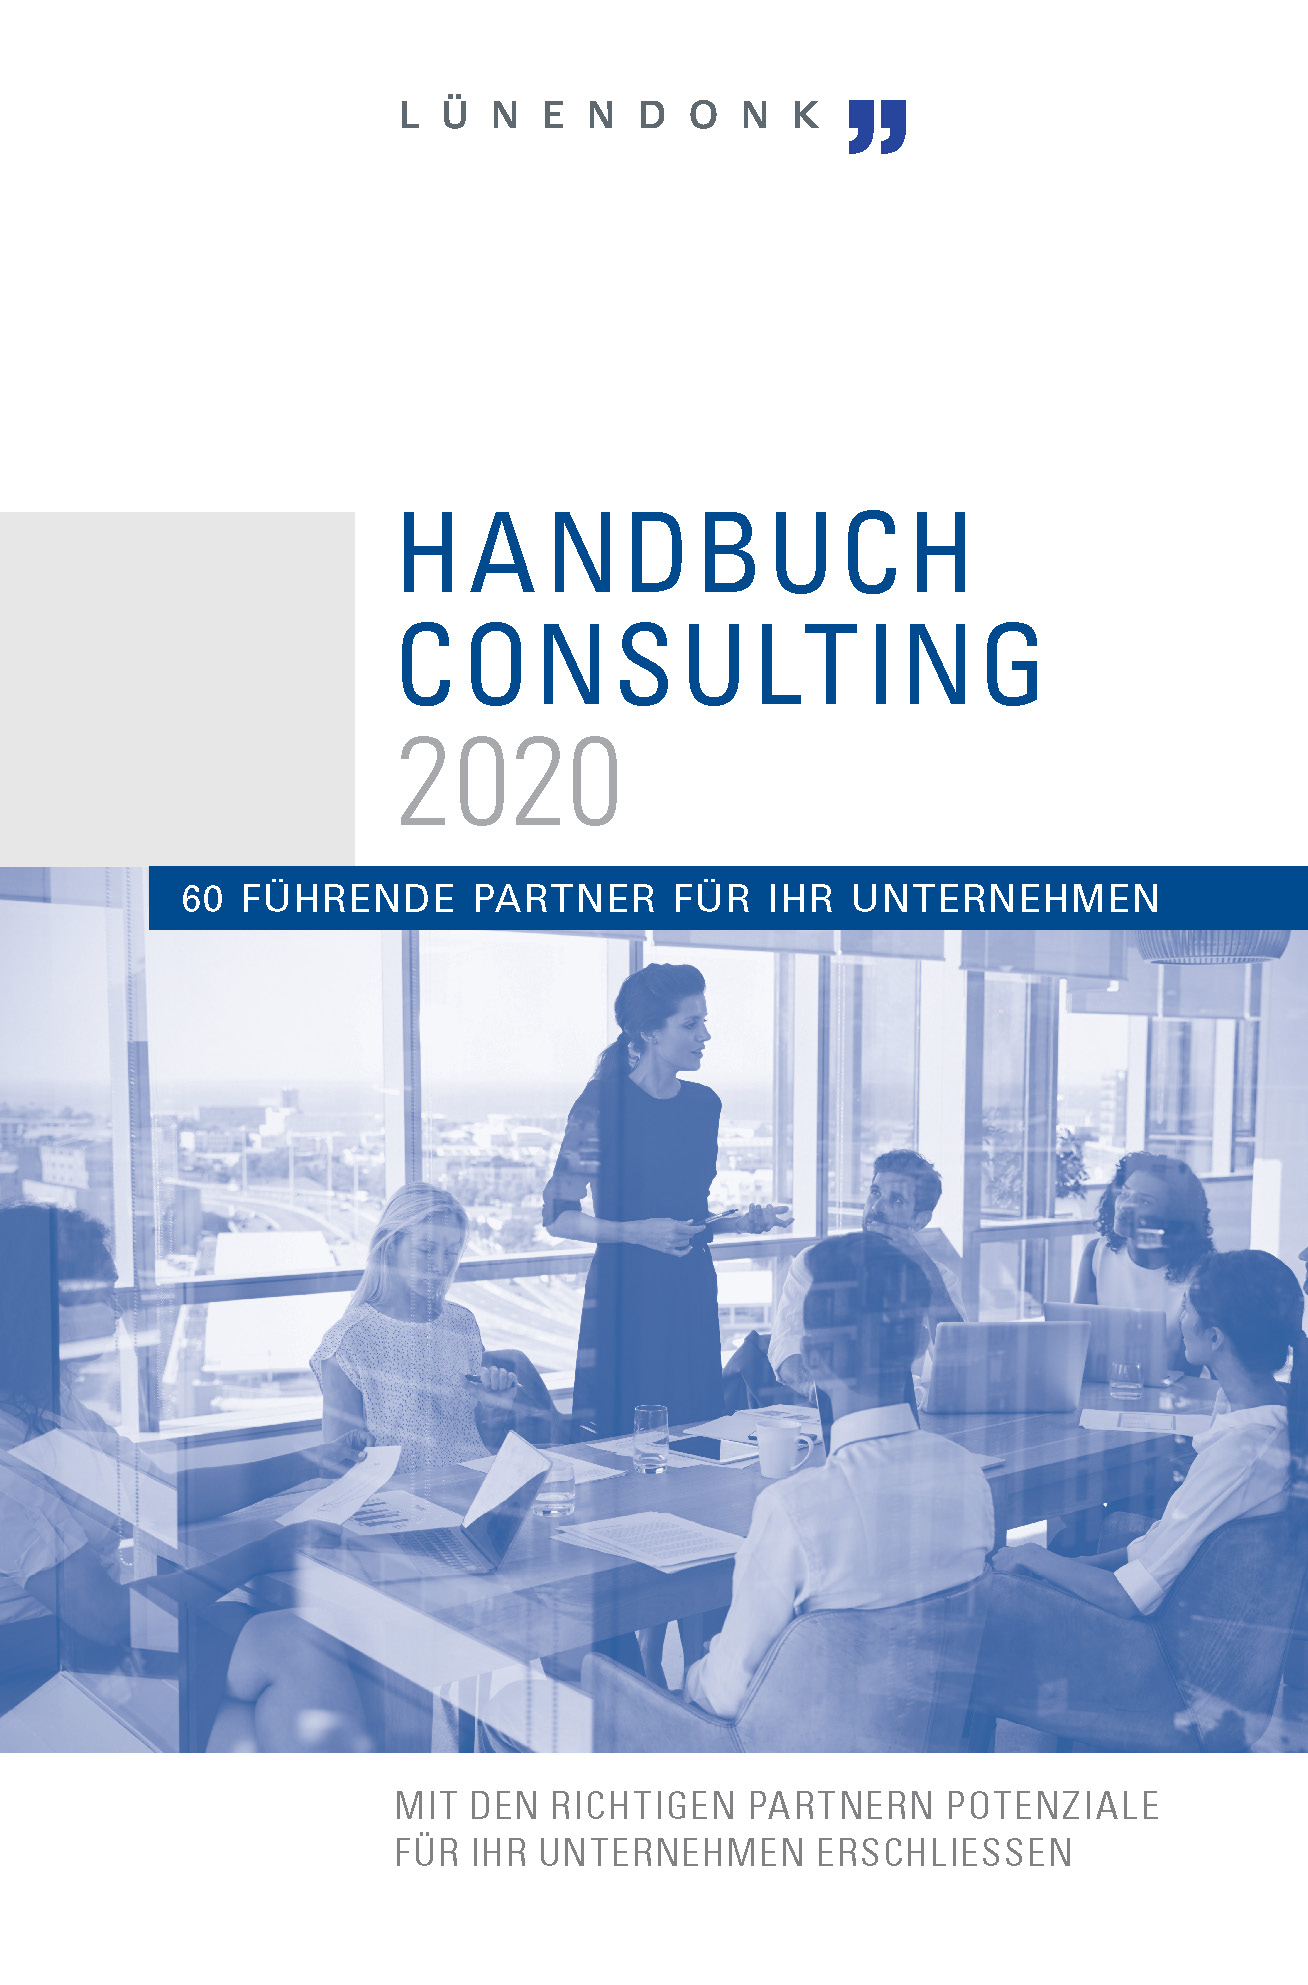 Lünendonk Handbuch Consulting 2020